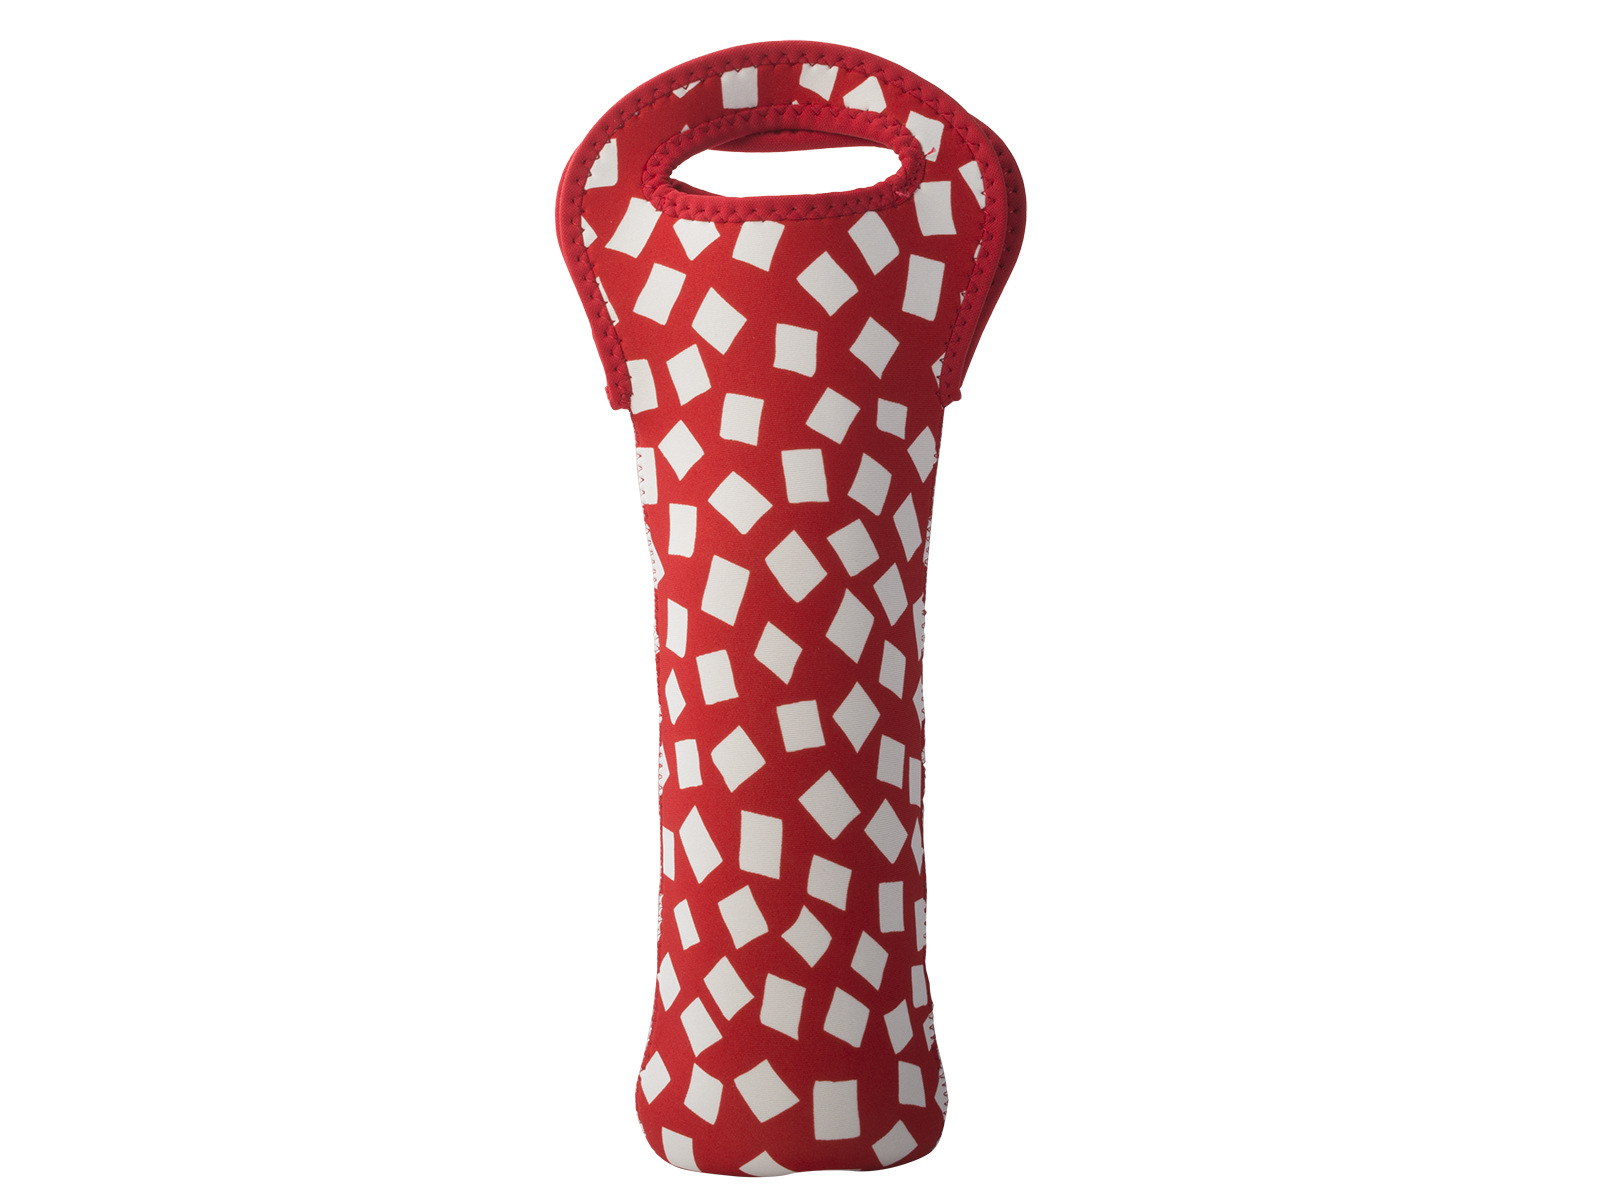 Built One Bottle Wine Tote Red Confetti